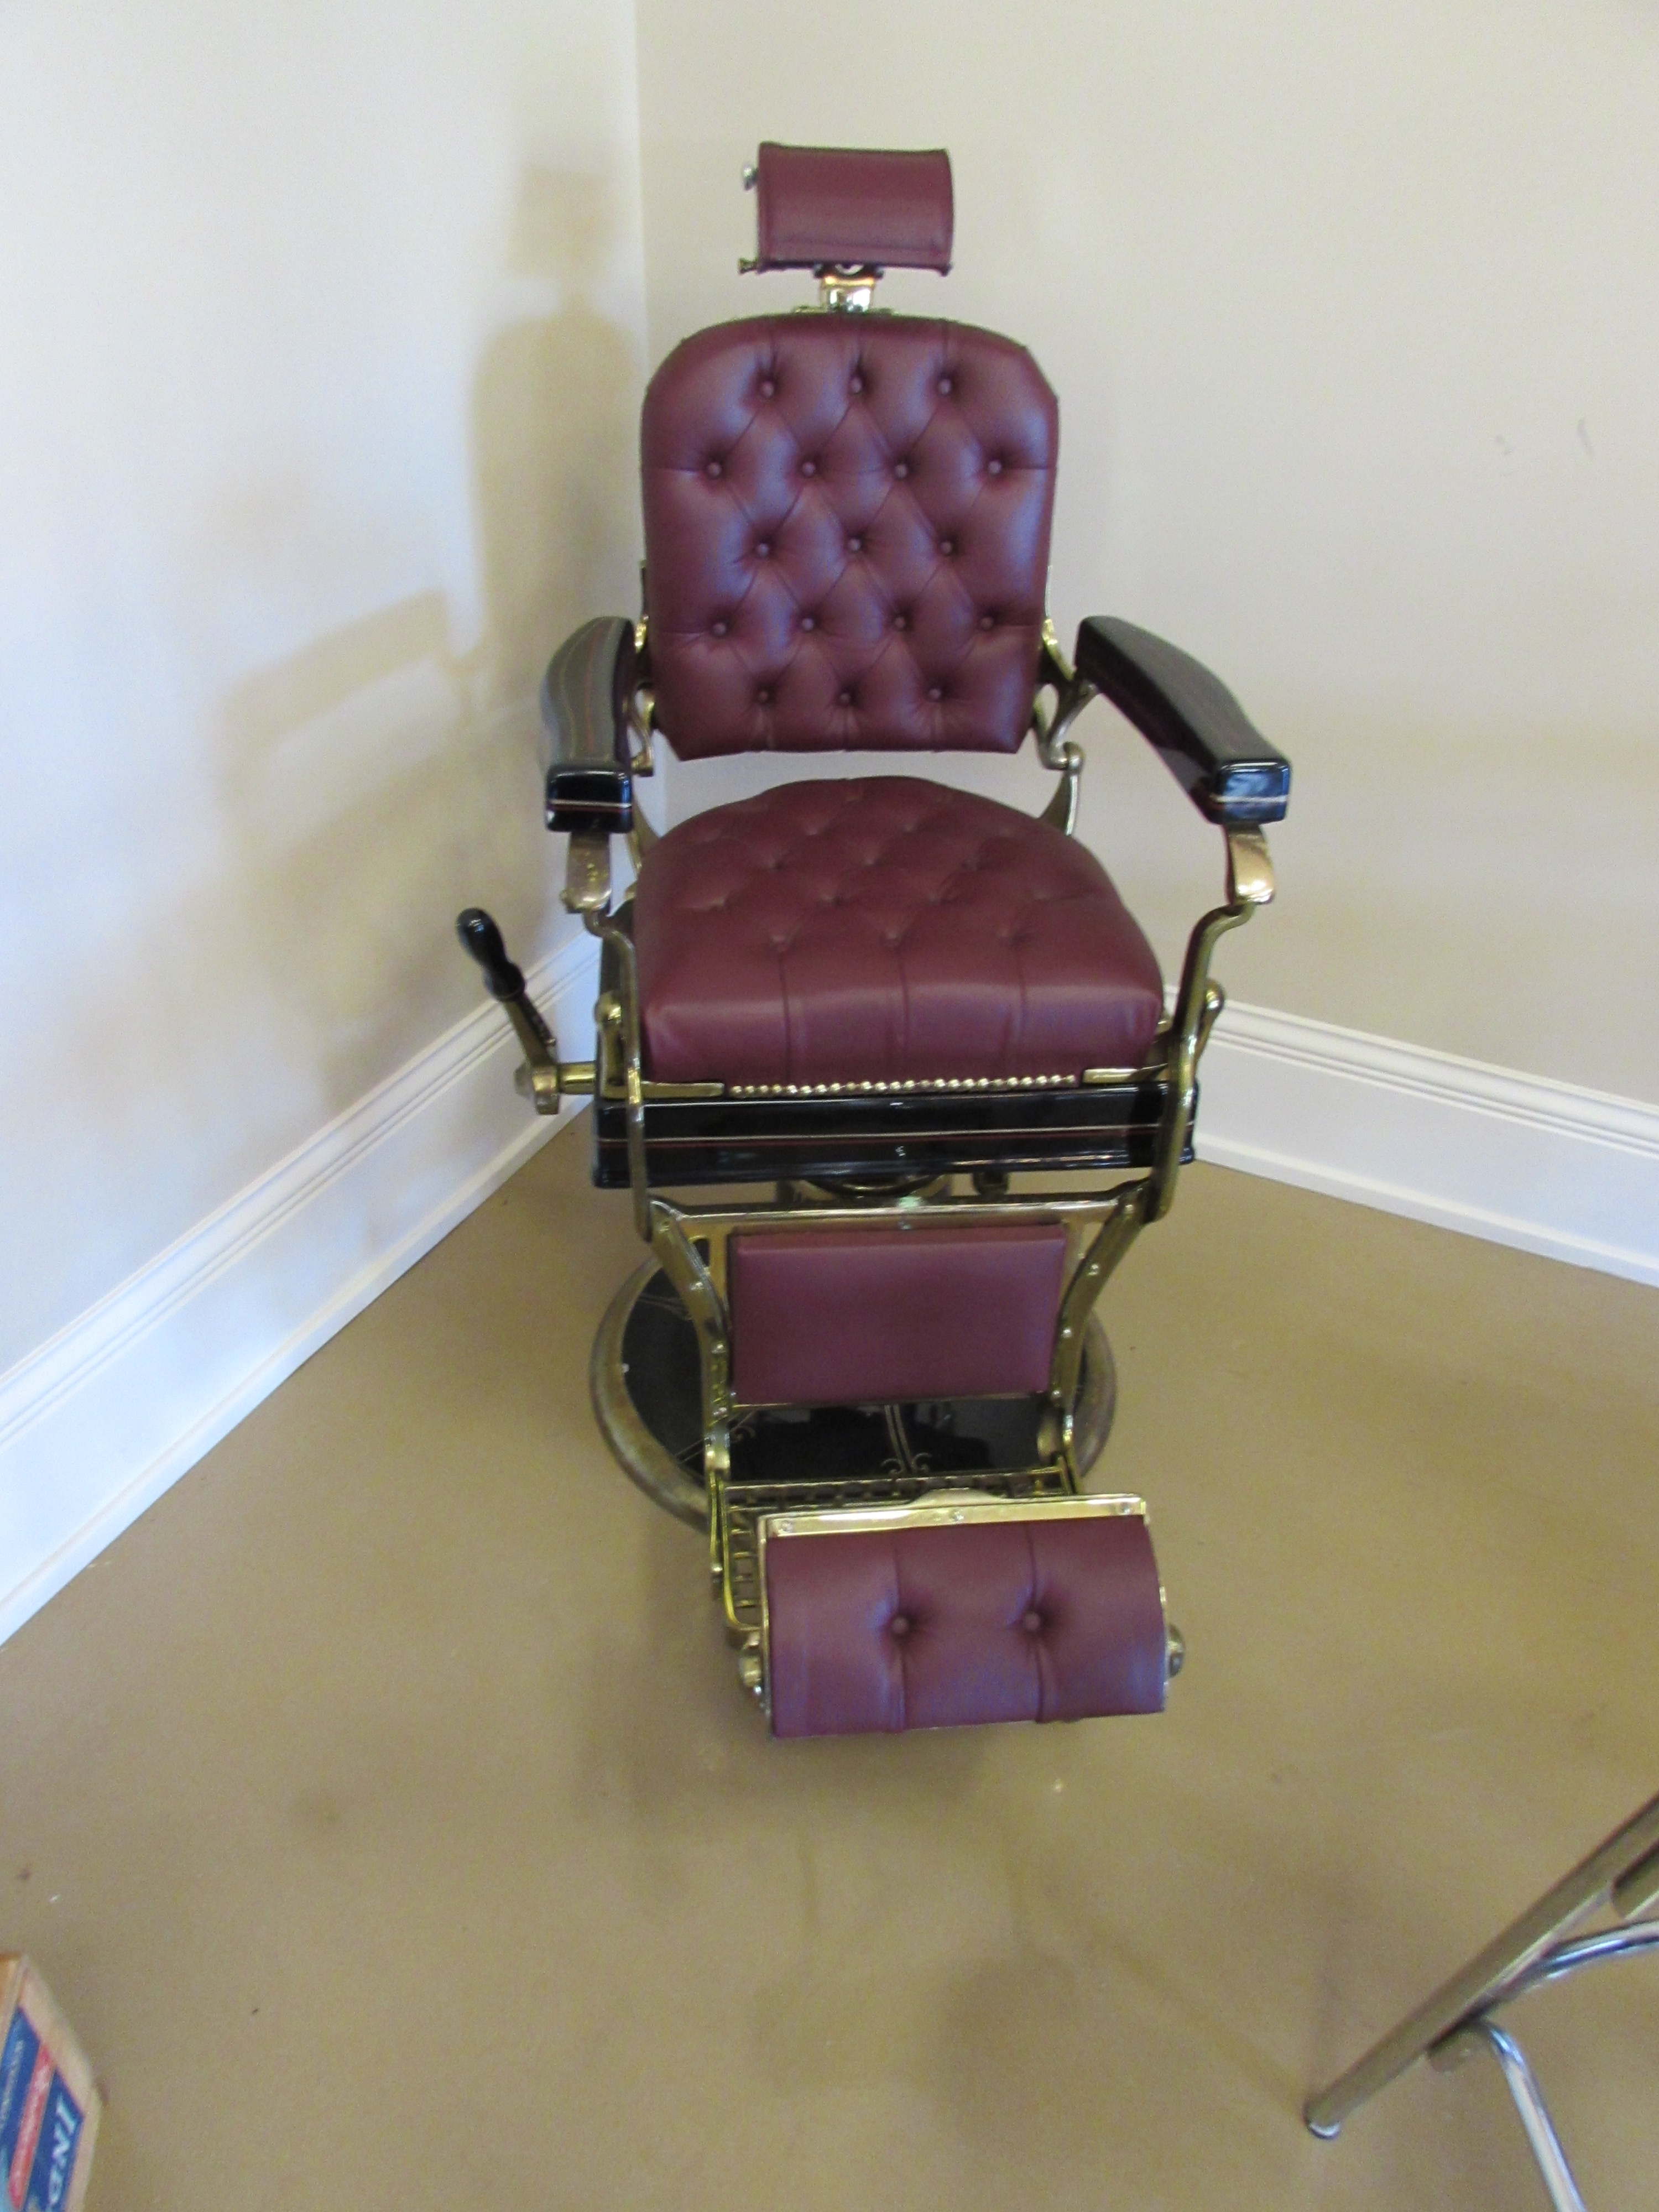 koken barber chair for sale steel drawing angiemauck shinn dig ranch